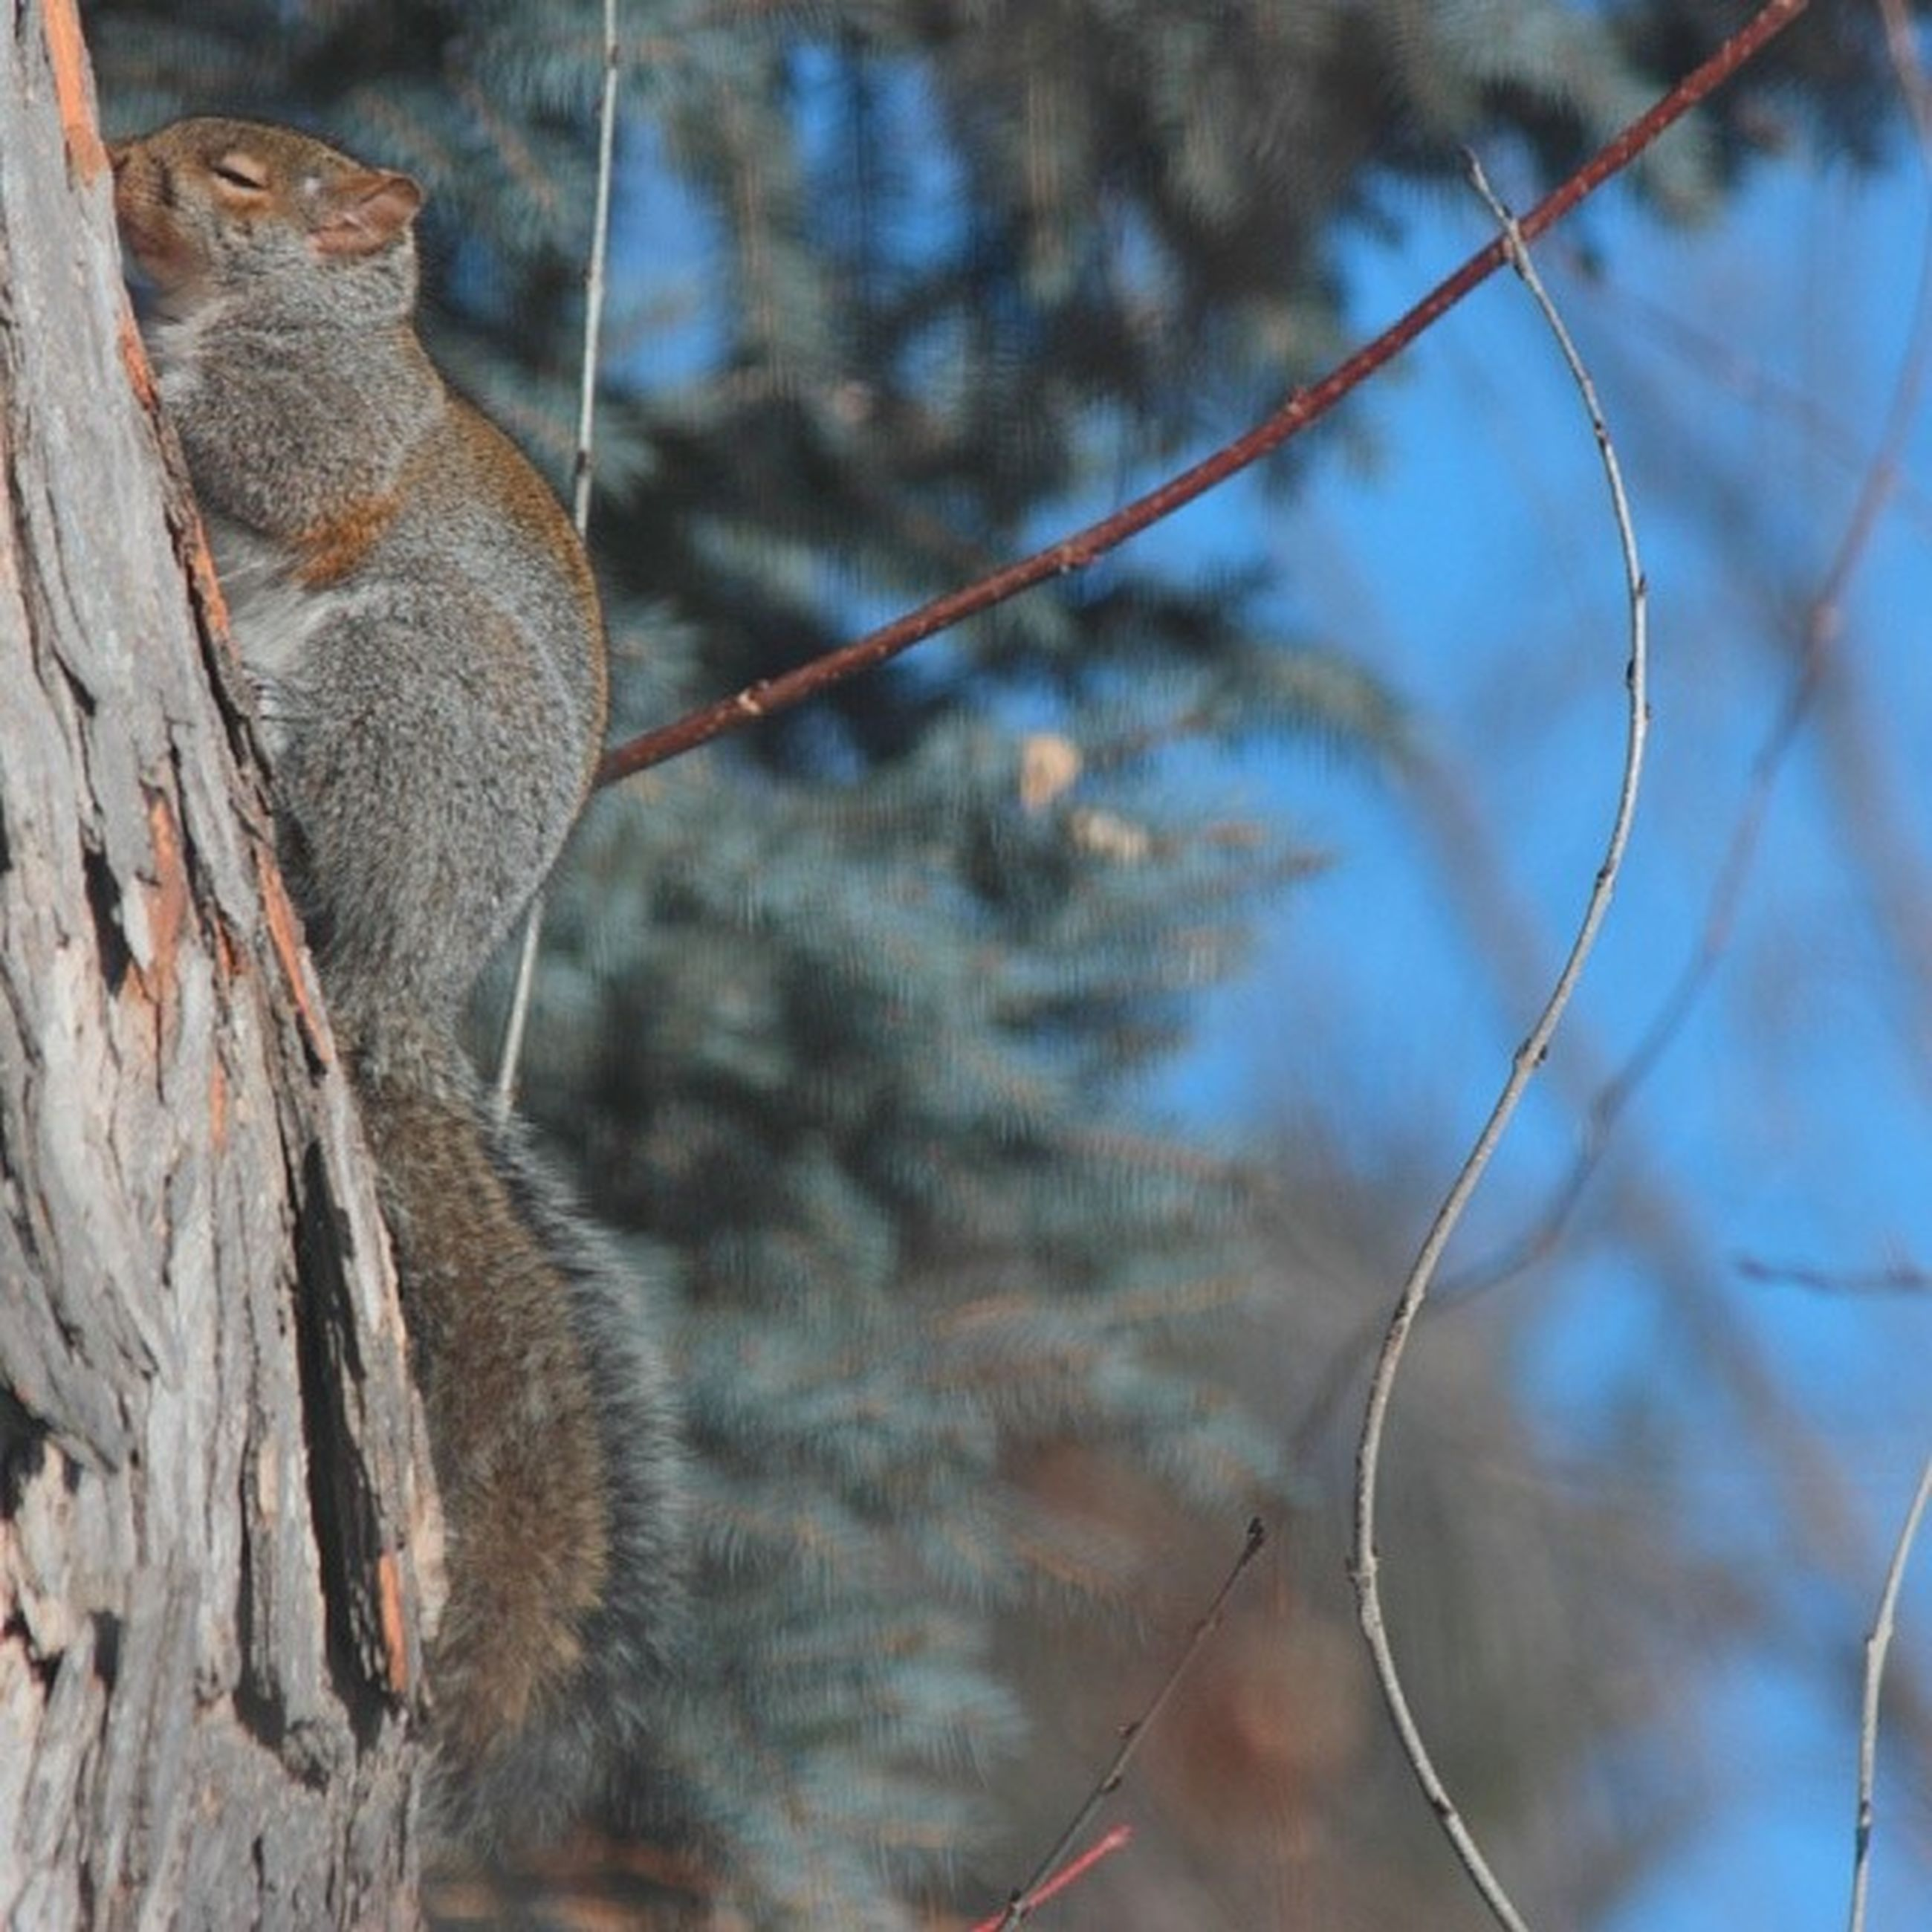 animal themes, focus on foreground, branch, one animal, close-up, tree, nature, day, outdoors, mammal, fence, tree trunk, animals in the wild, wildlife, no people, selective focus, chainlink fence, part of, twig, plant